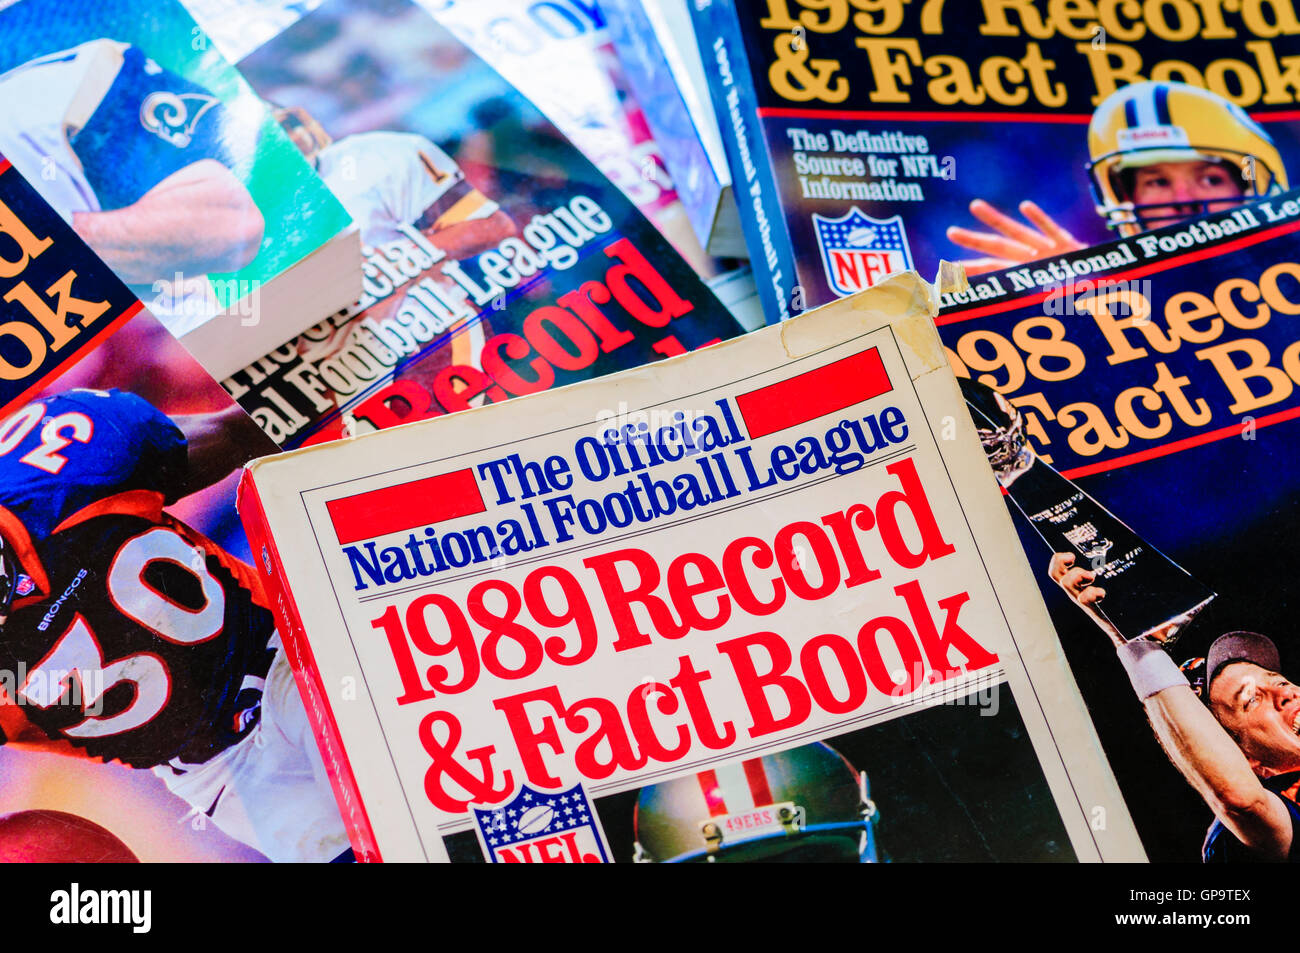 NFL official American Football yearbooks from 1989 to 1999 - Stock Image